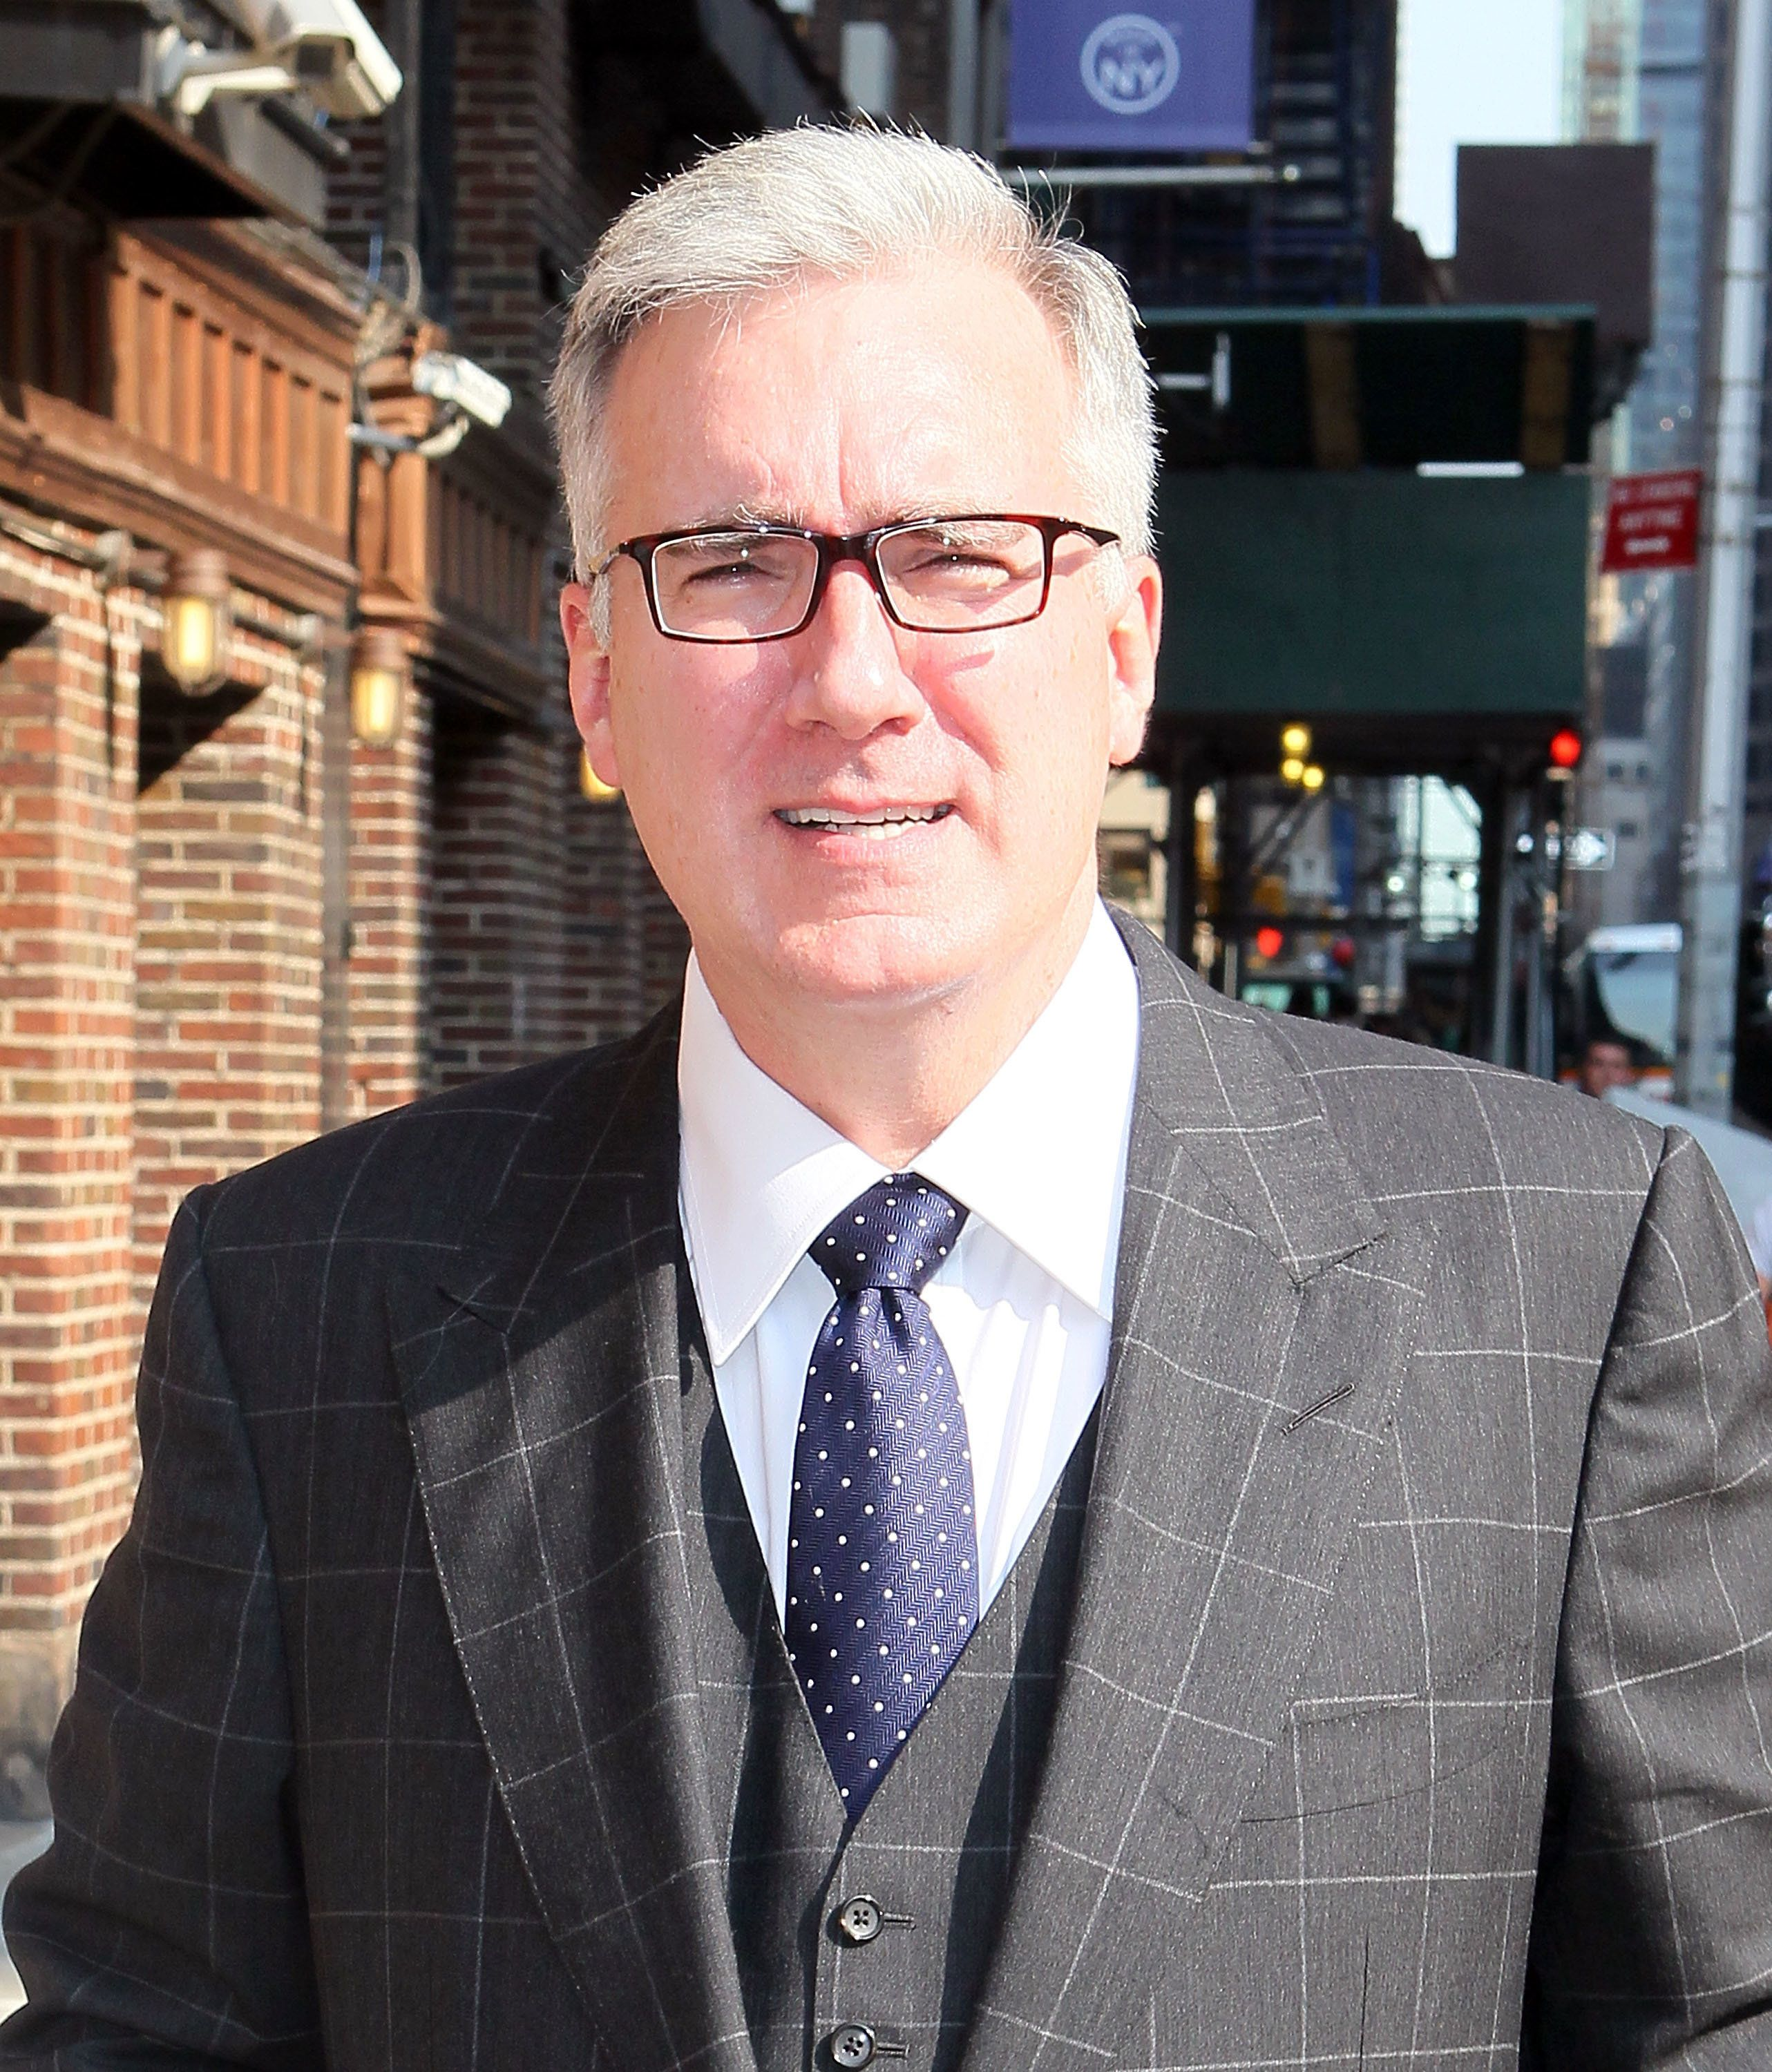 Keith Olbermann recalled the exact, awful Trump moment that made him list his Trump Tower apartment.